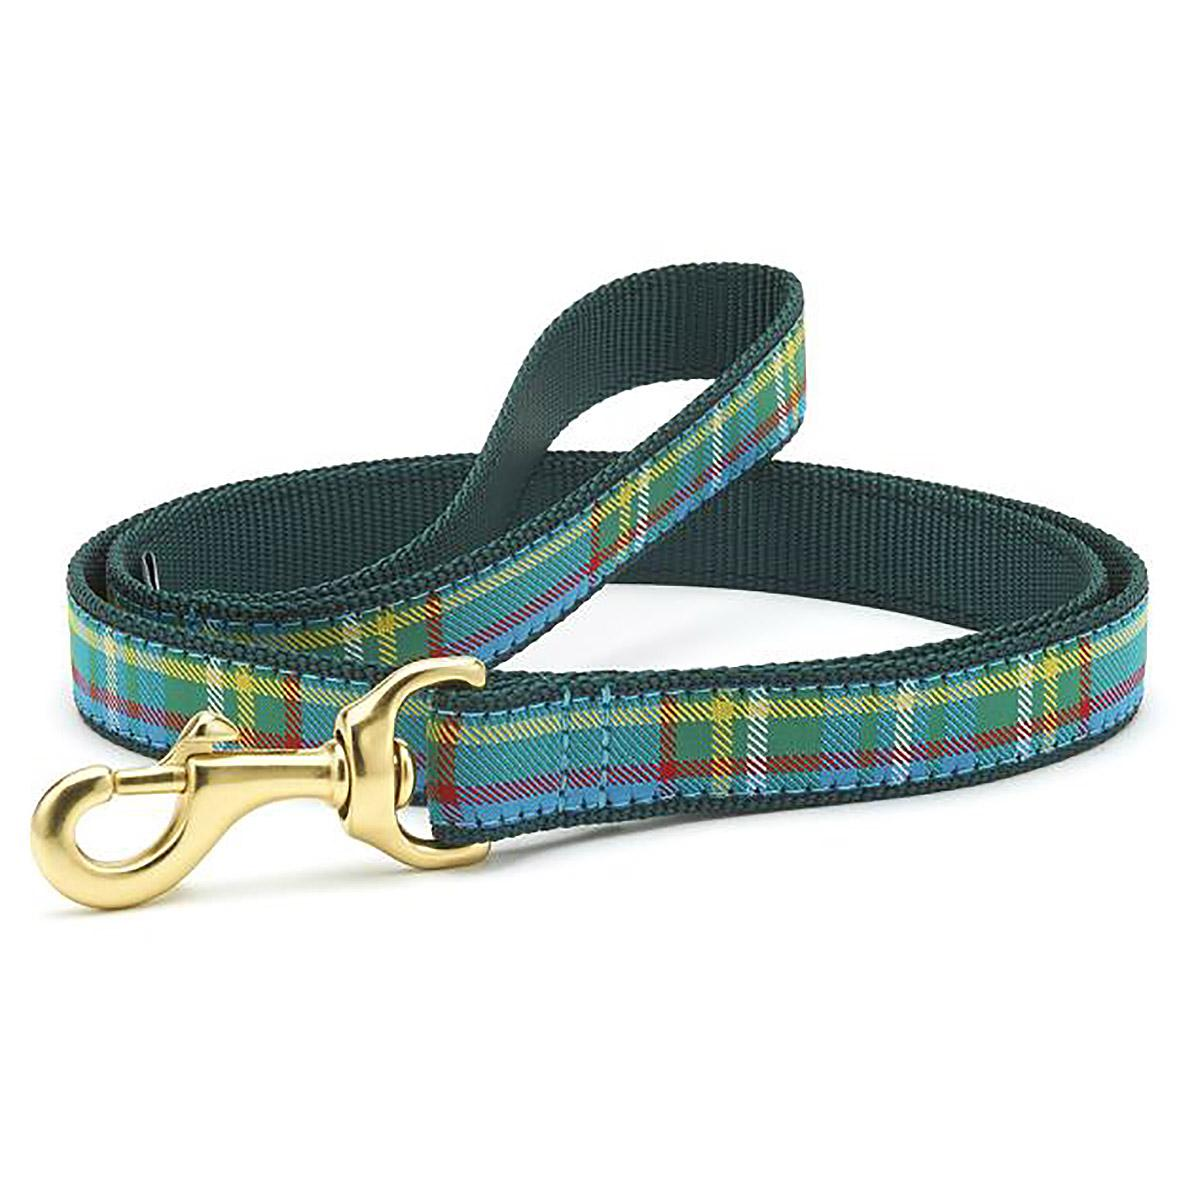 Kendall Plaid Dog Leash by Up Country